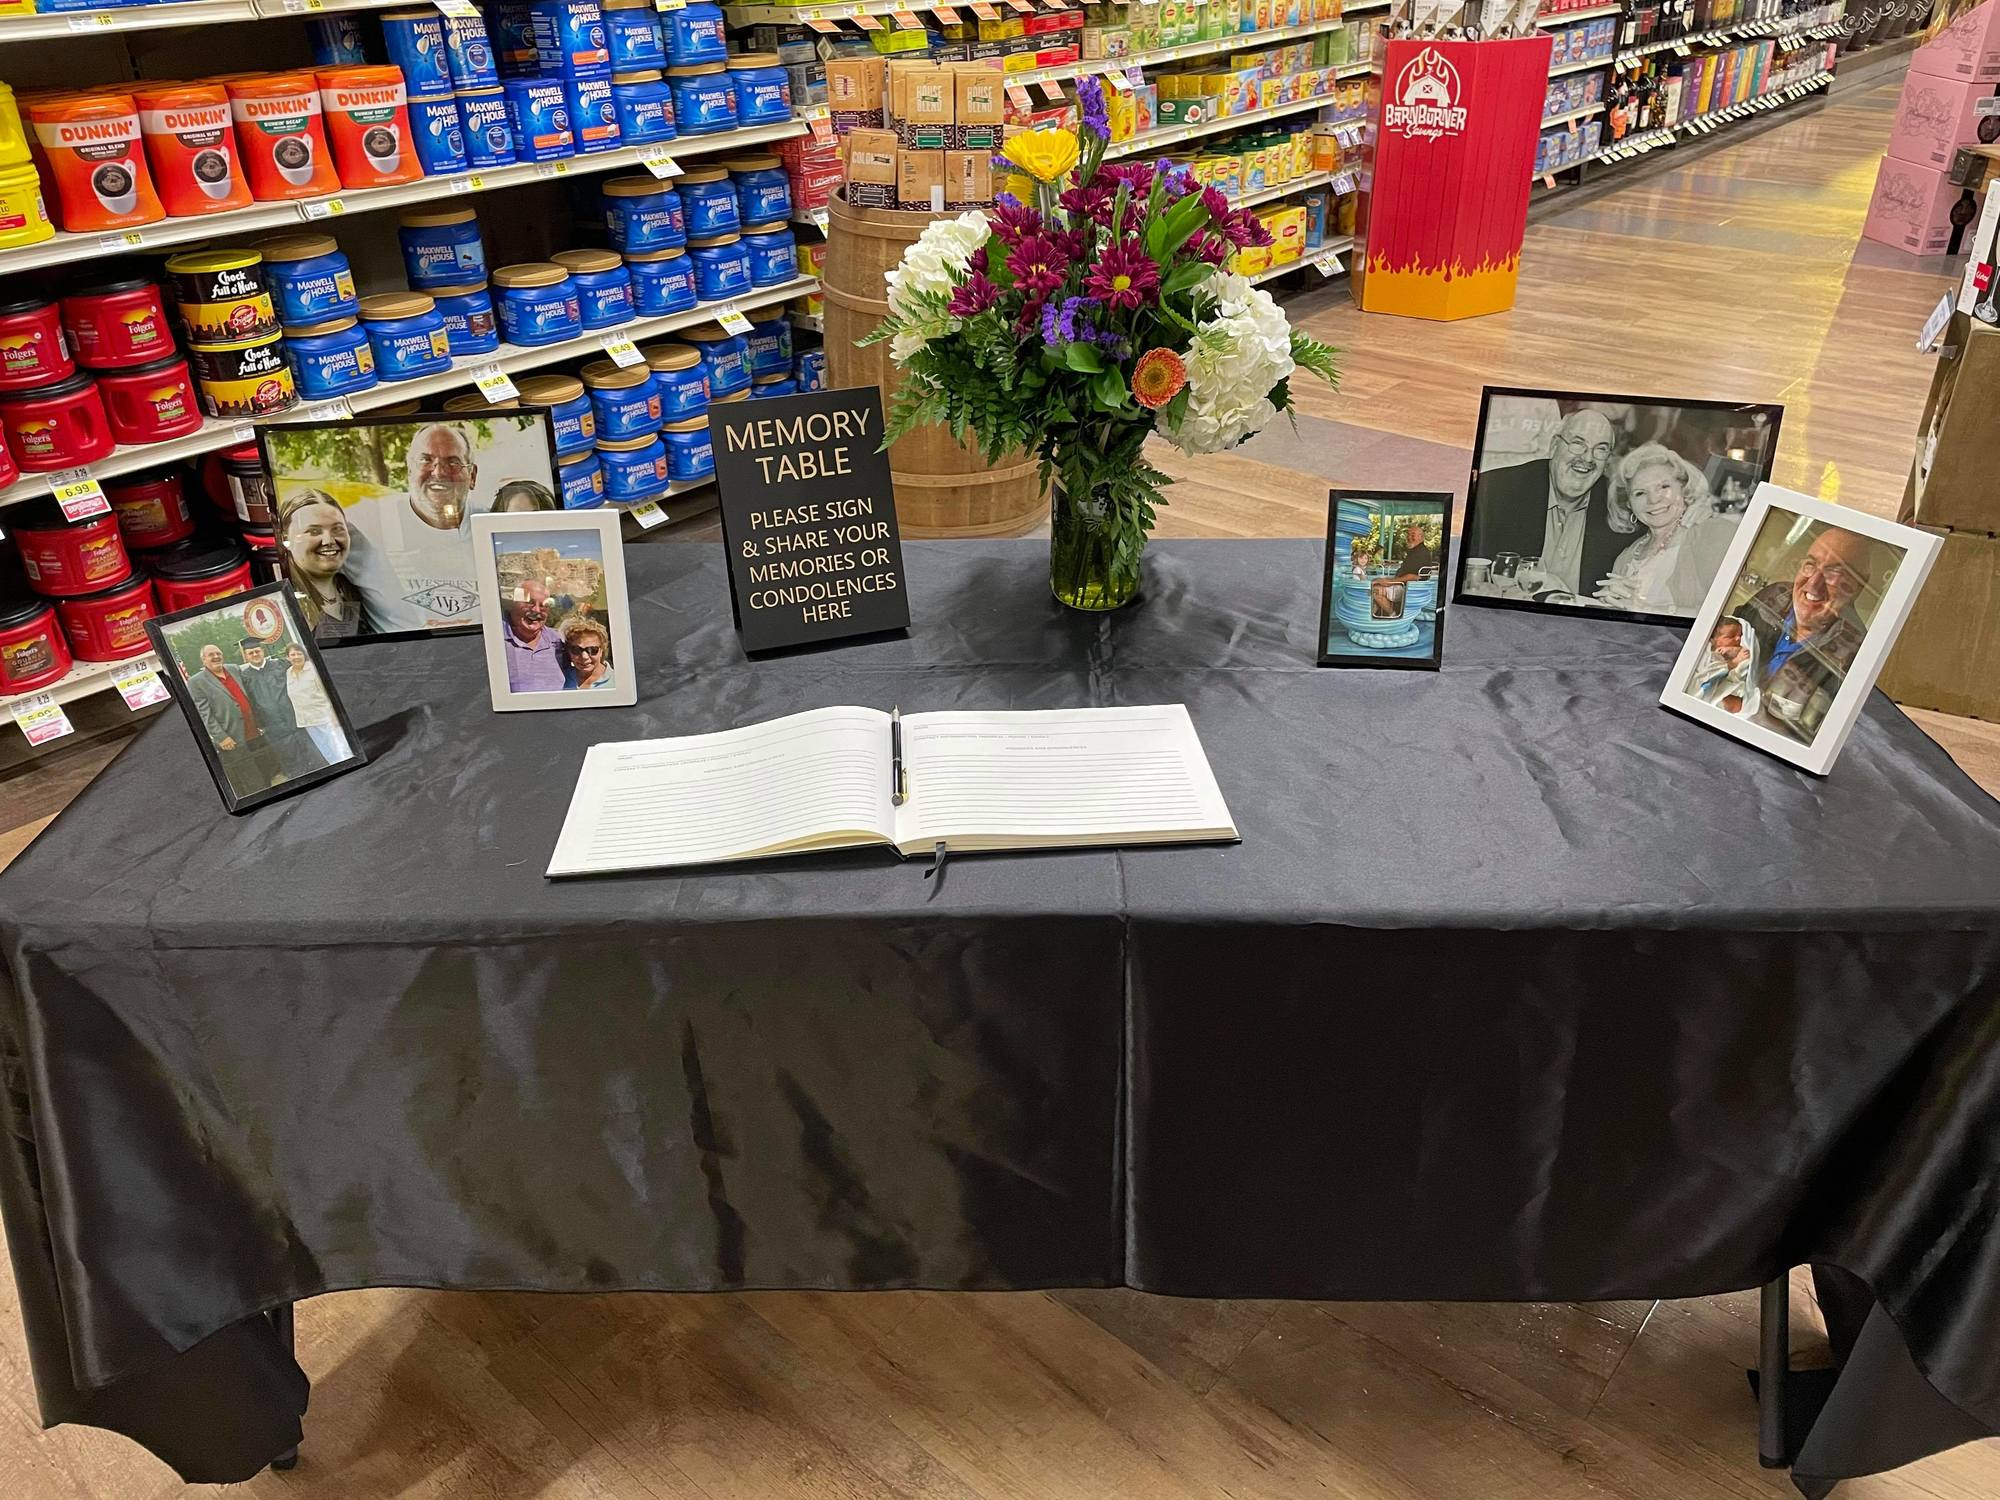 A memorial table for Mark Terry in Lowes Foods in Winston-Salem, North Carolina. June 2021